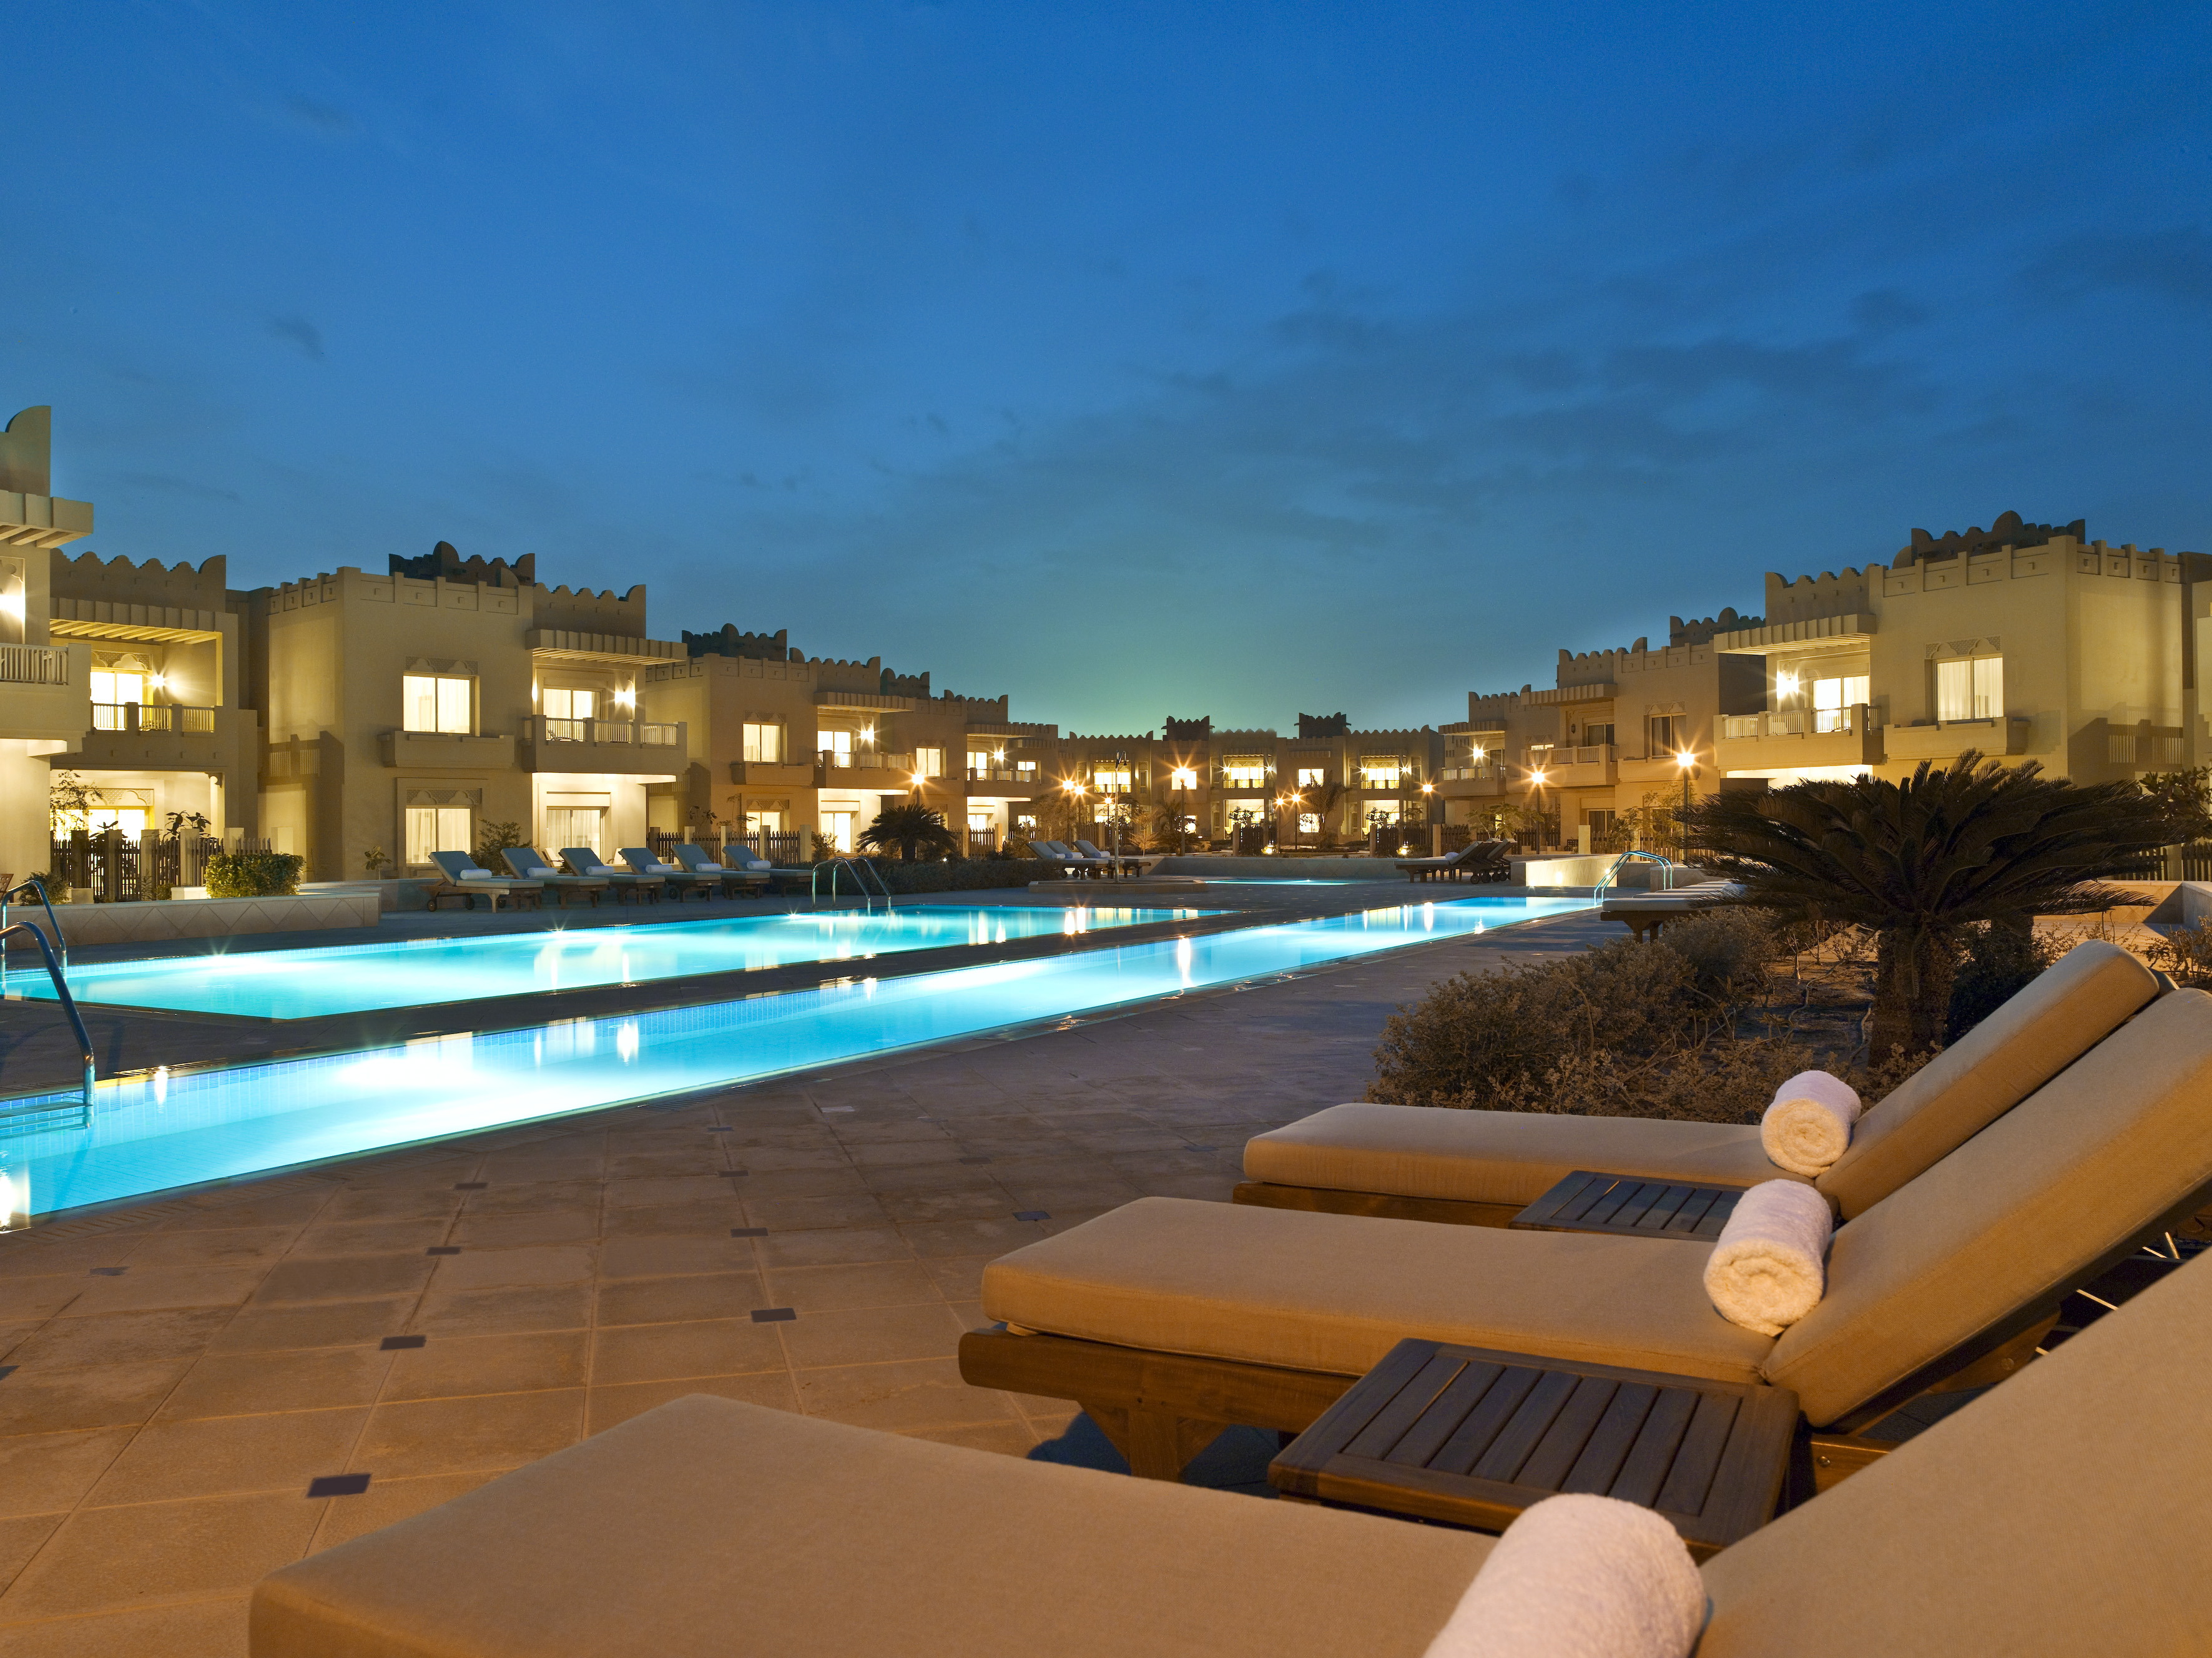 Grand Hyatt Doha Hotel & Villas